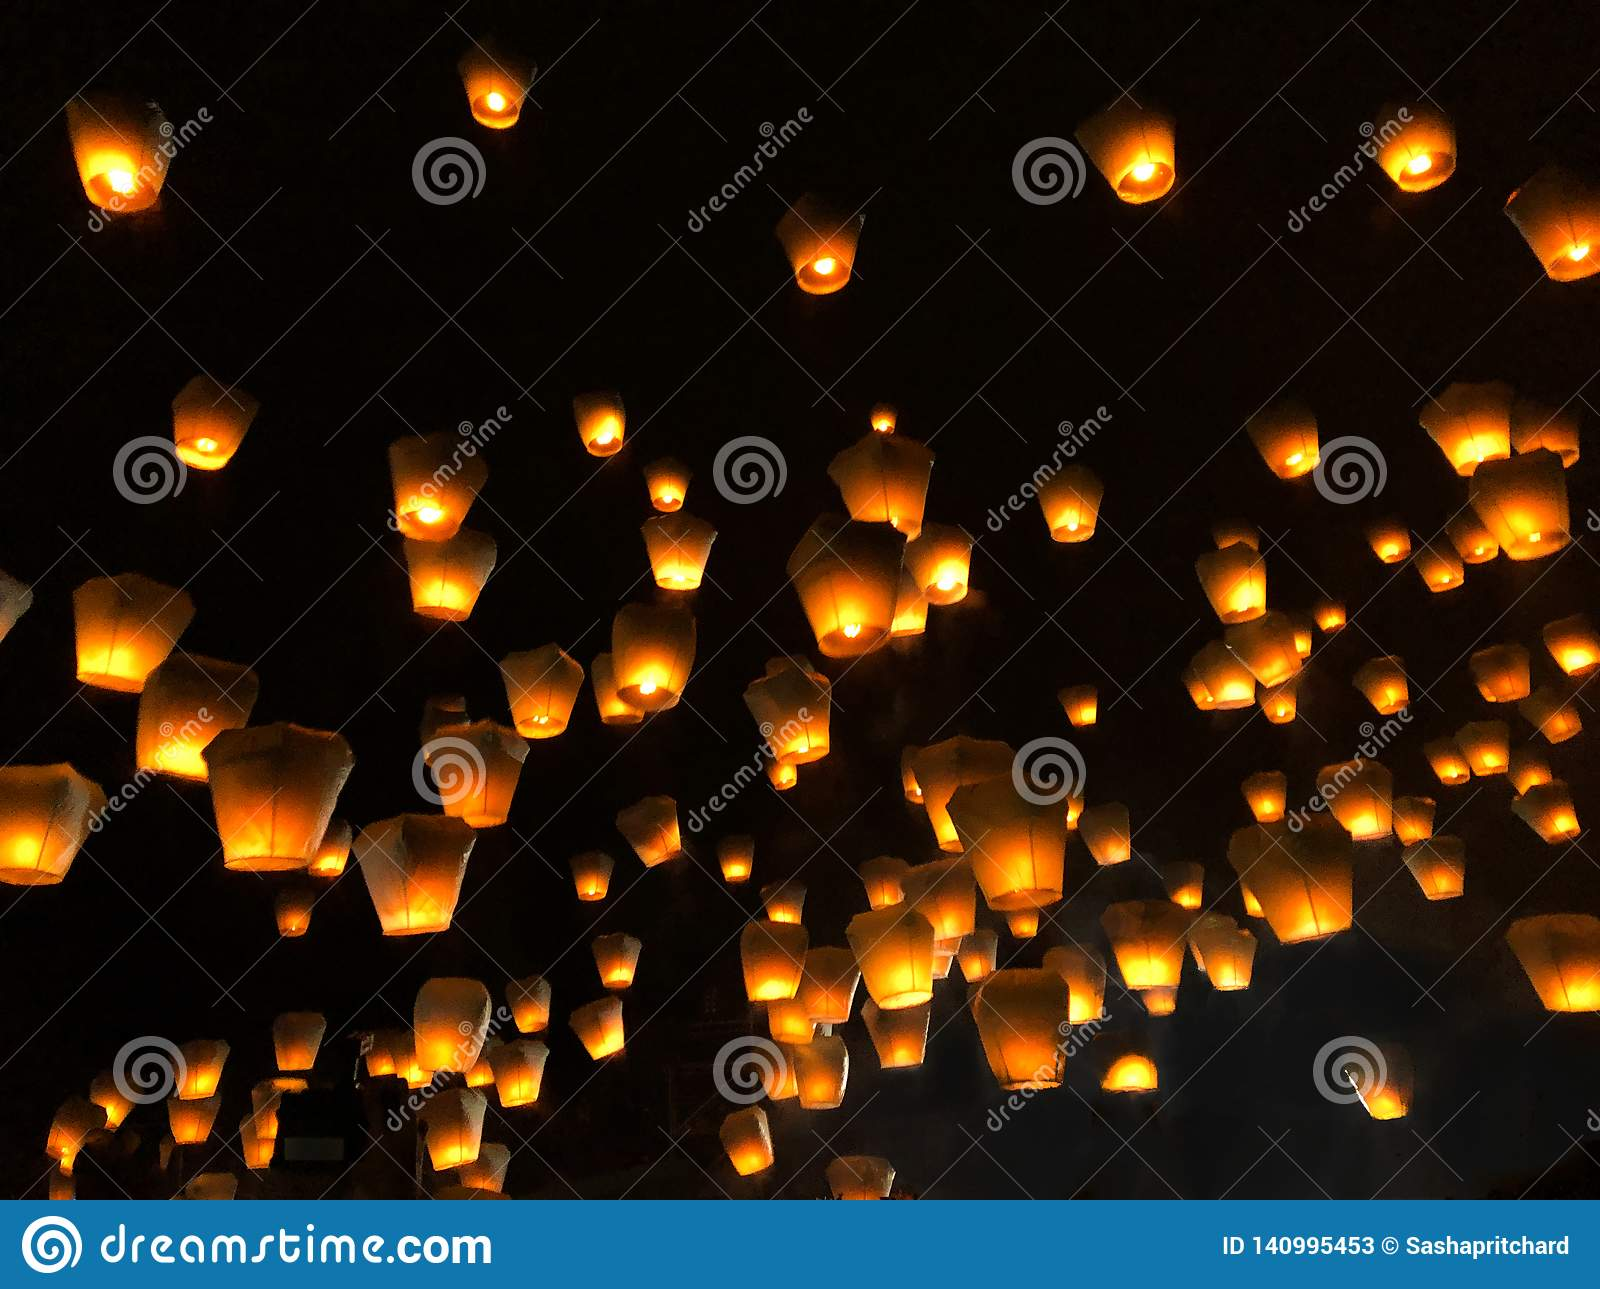 Chinese lanterns during the lantern festival